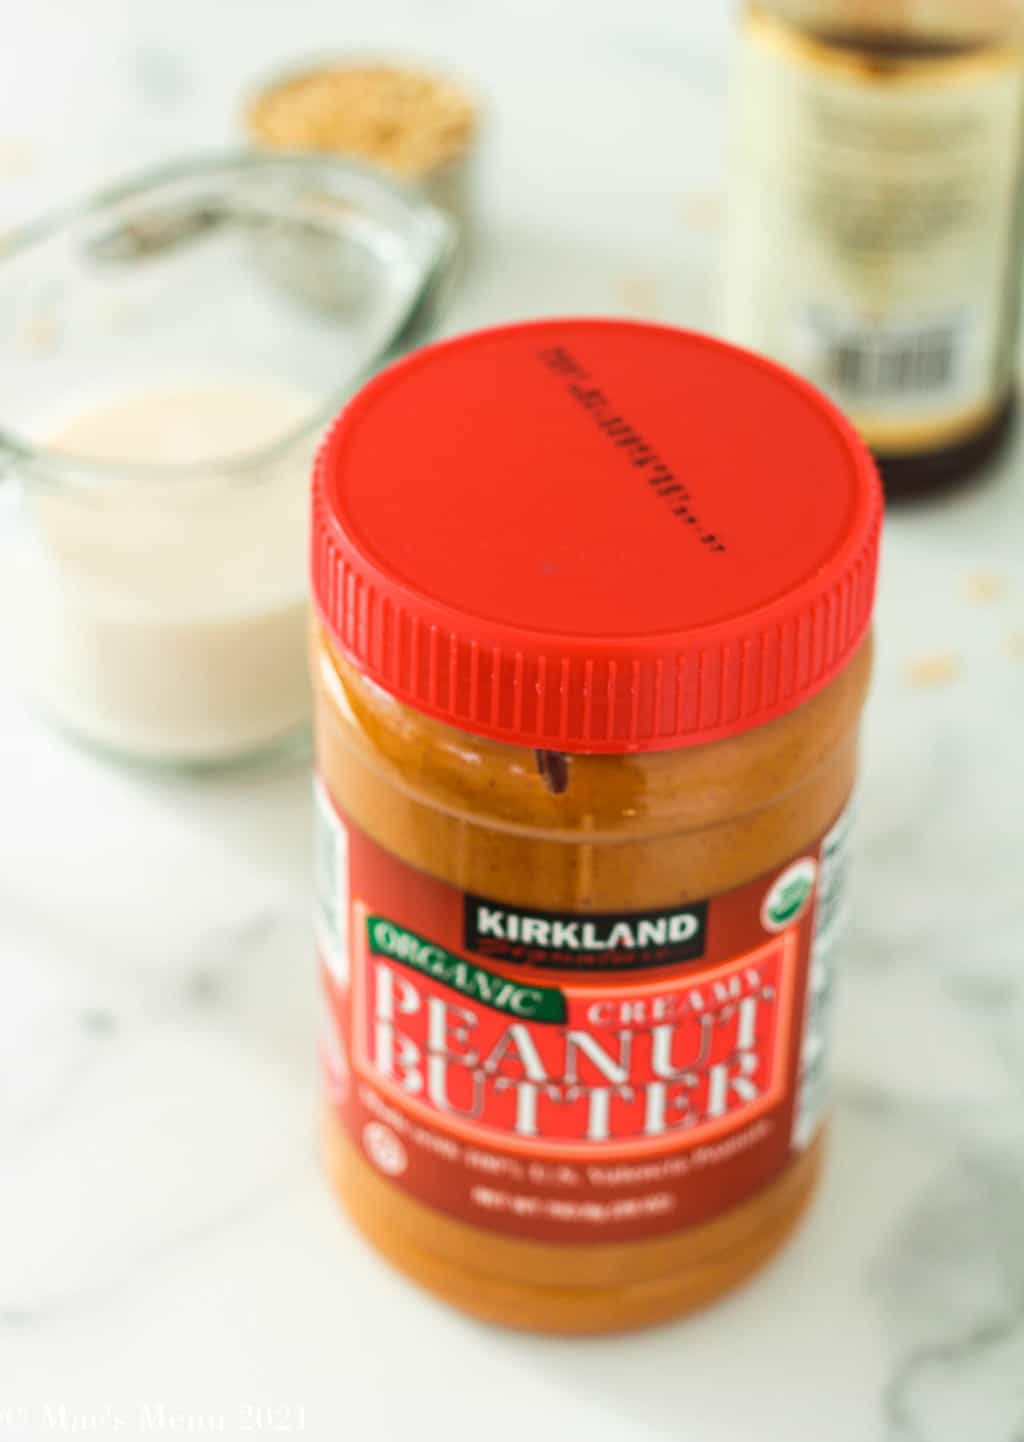 A jar of peanut butter, almond milk, vanilla extract, and peanut butter on a countertop